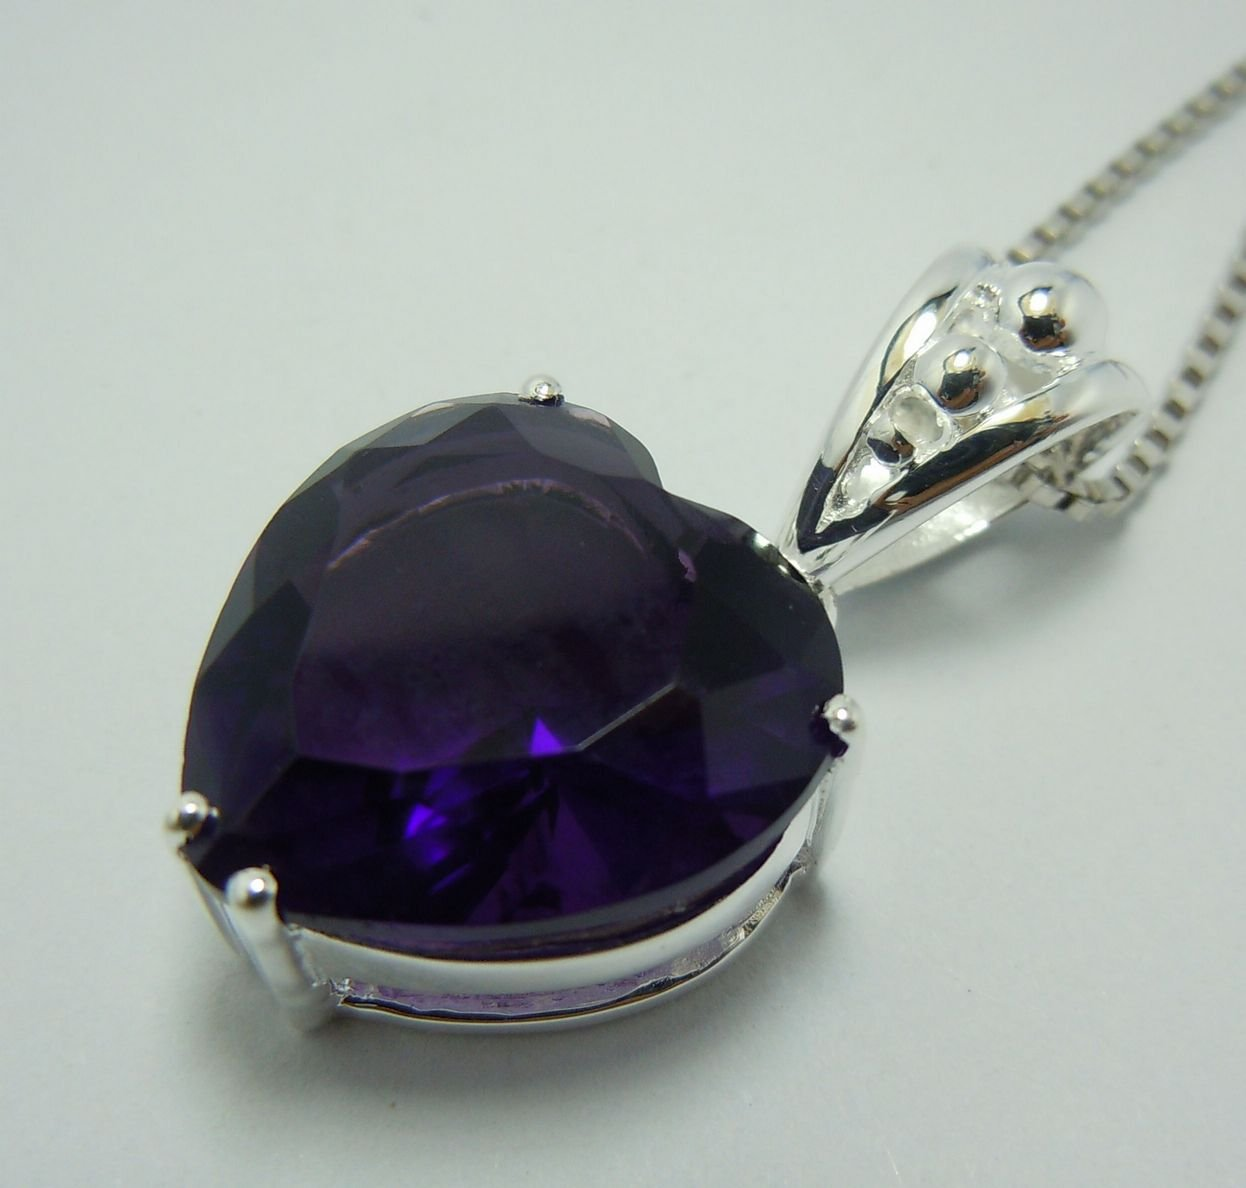 Hot ~ promotion! Free transport 925 silver mysterious heart-shaped amethyst pendant. Woman's pendant. Good jewelry pendant.(China (Mainland))